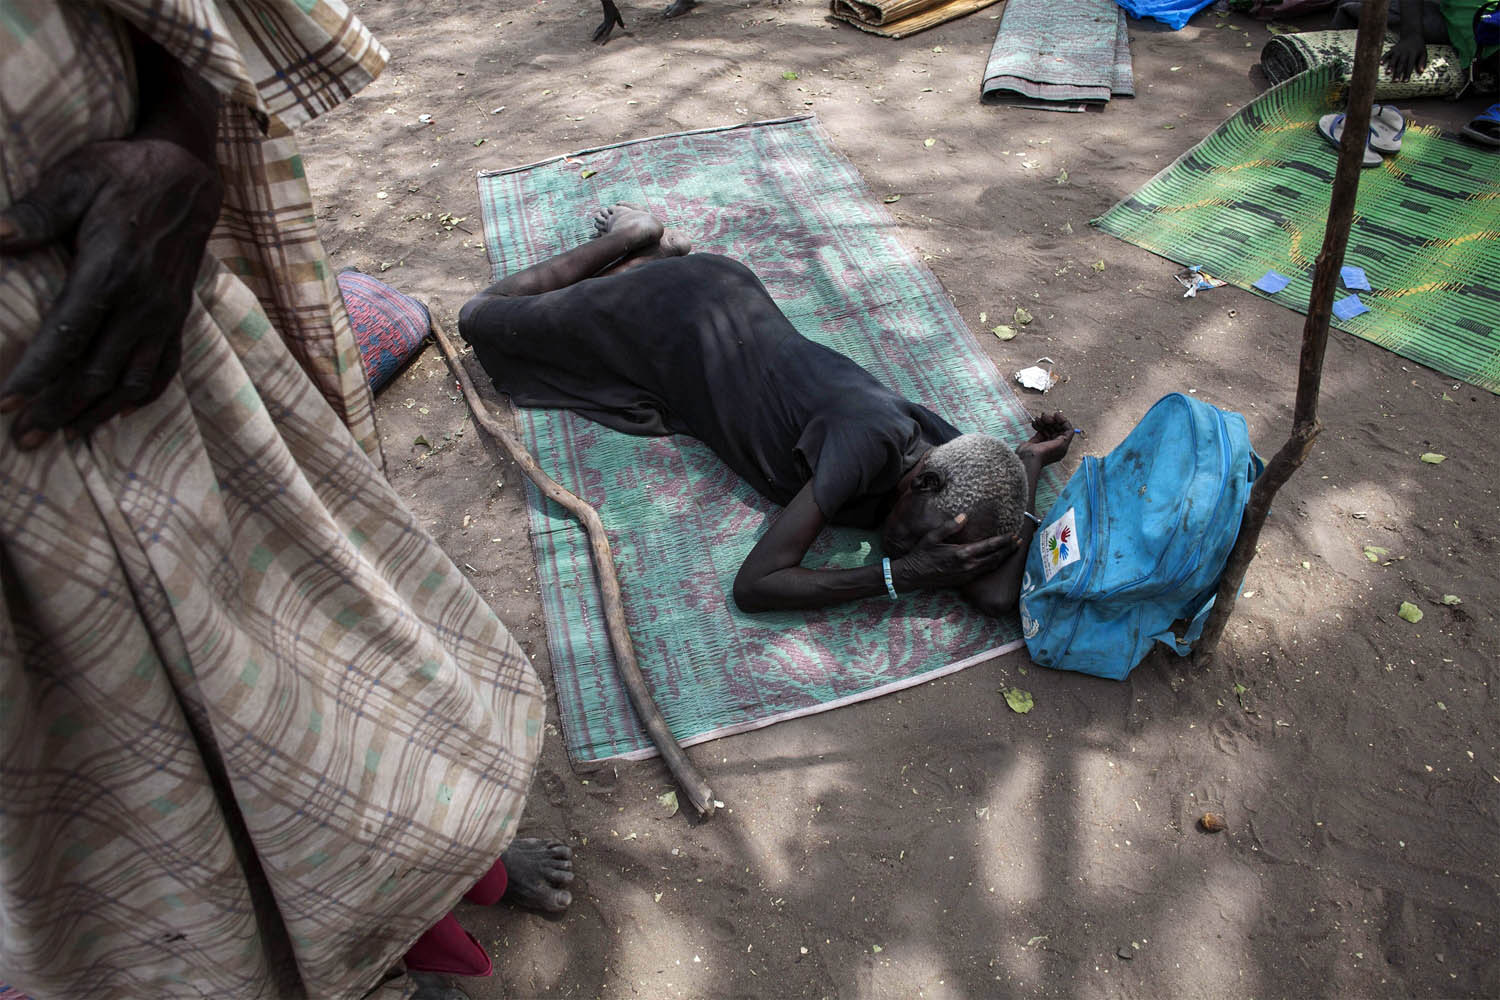 Feb. 5, 2014. A South Sudanese woman lies on the floor in a temporary camp for internally displaced persons in Mingkaman, South Sudan